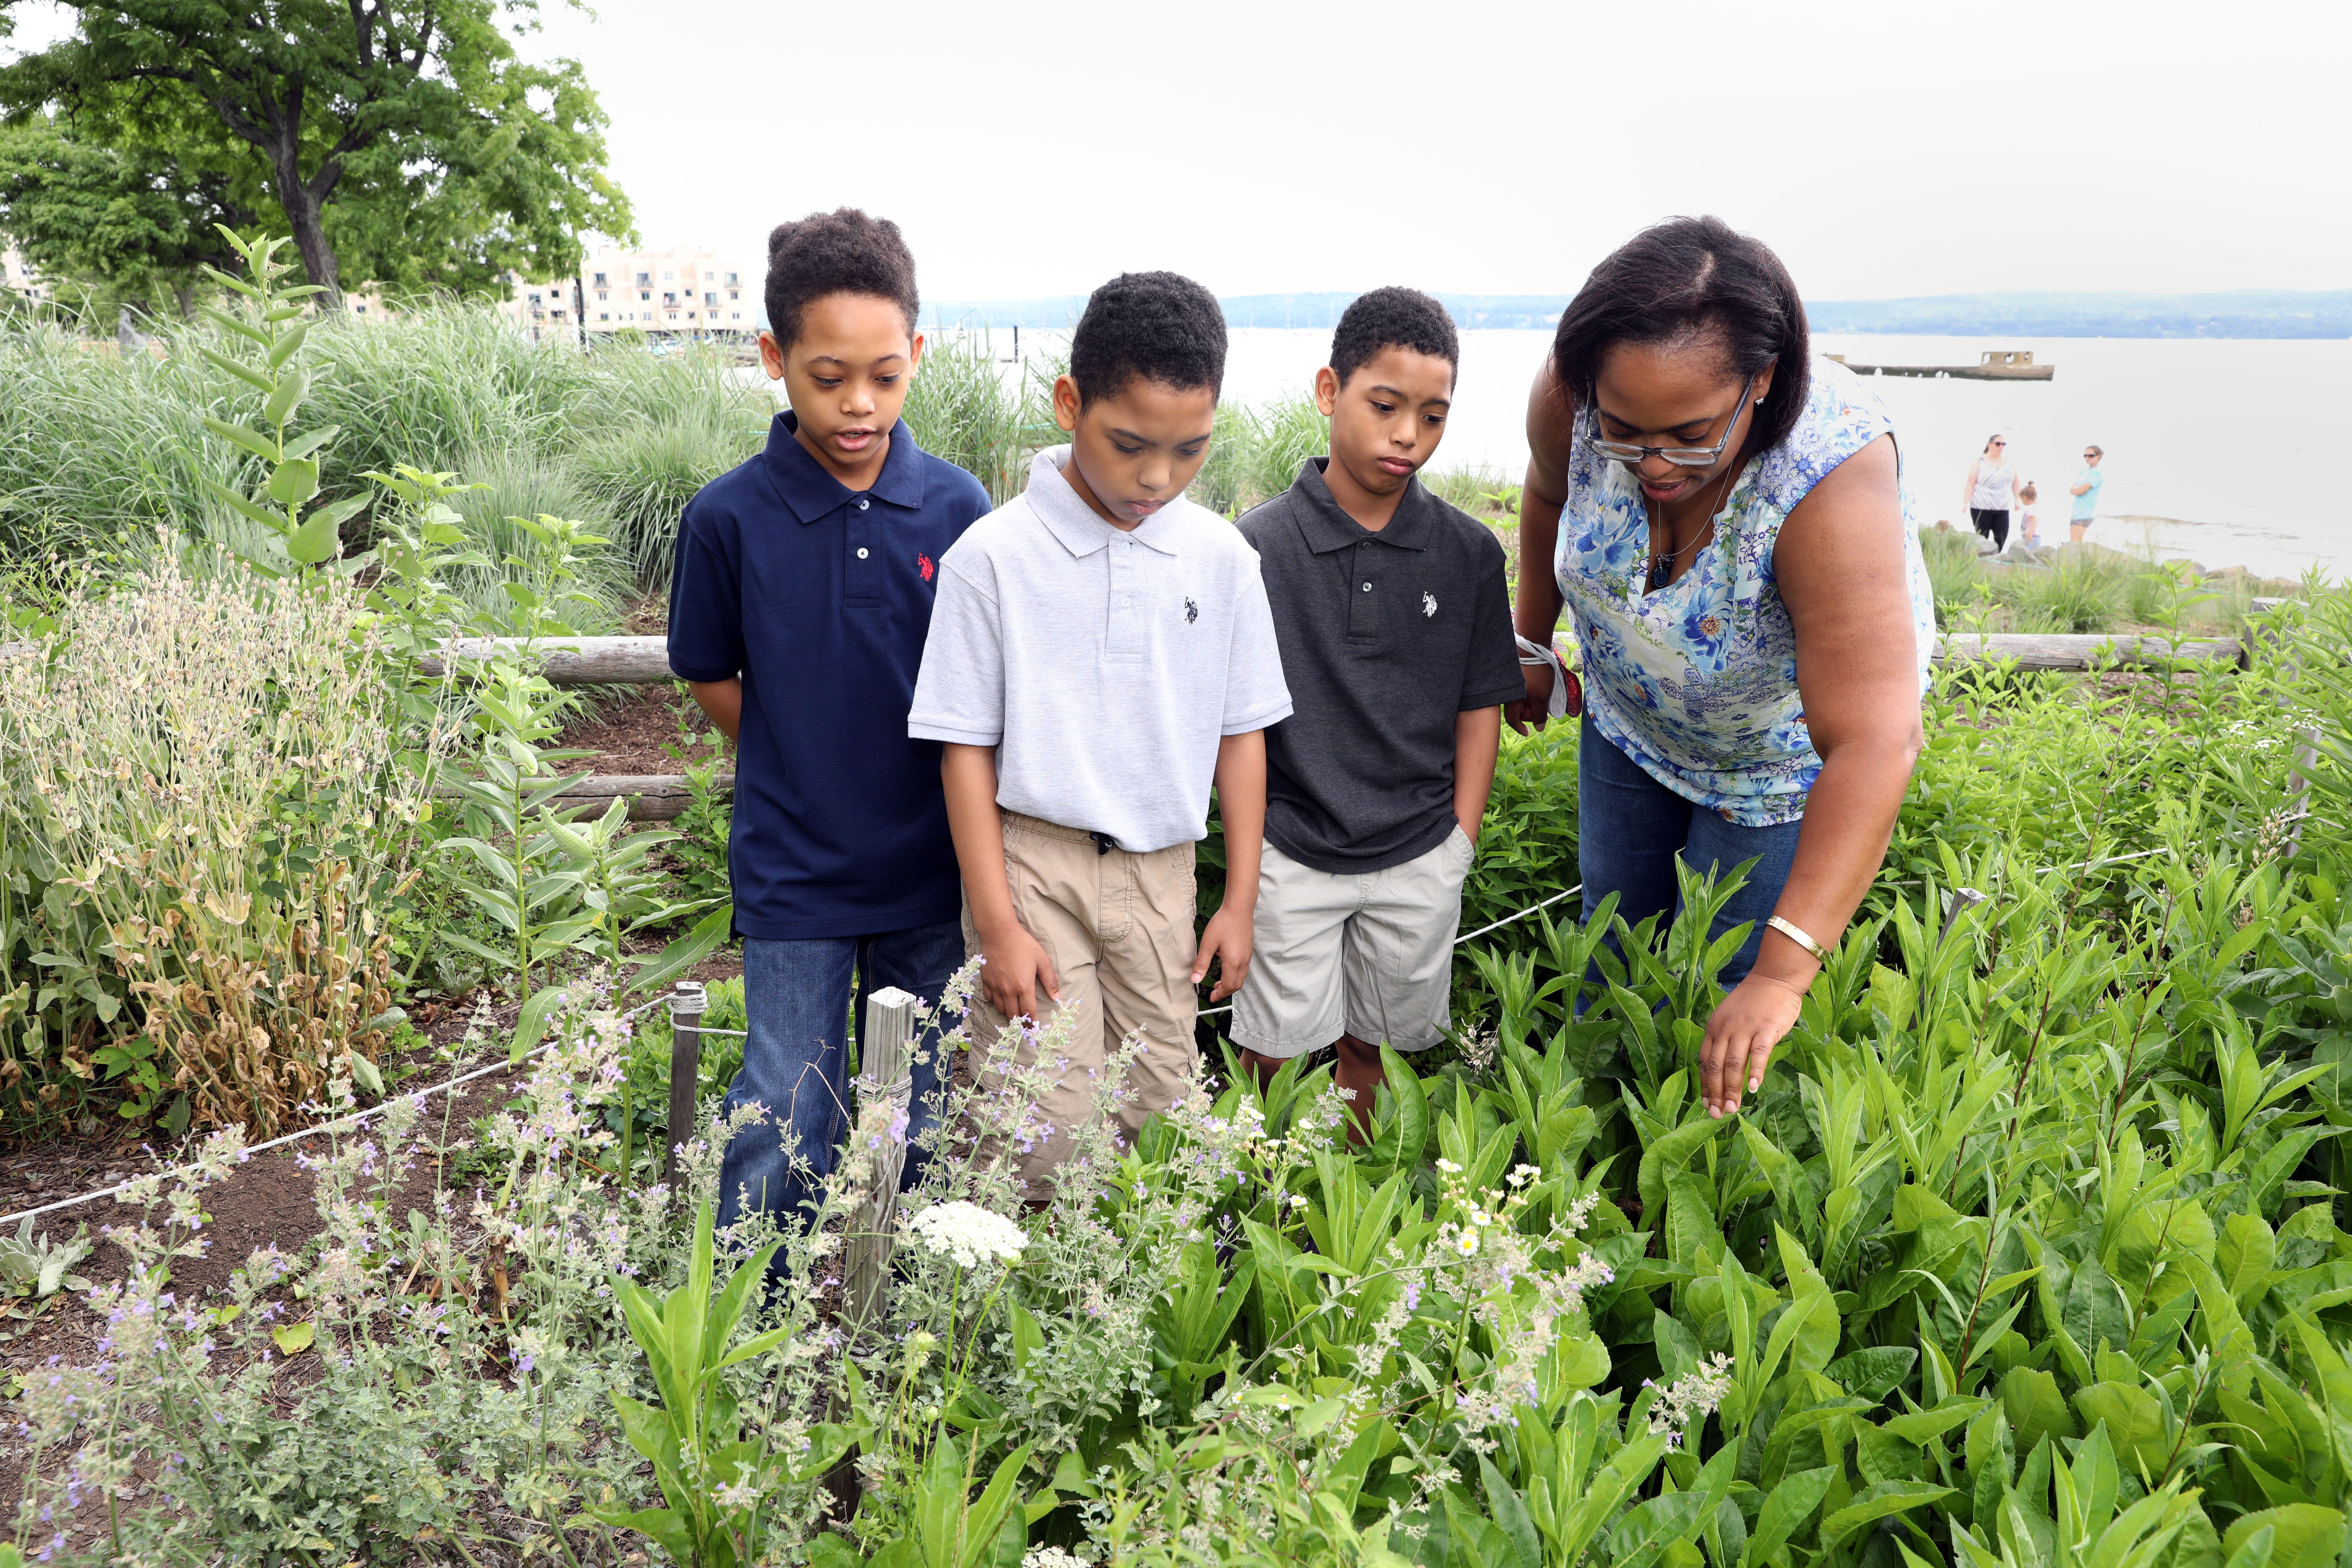 Nathalie Riobe-Taylor and her sons Tristan, 10, left, and 9-year-old twins Tanner, center, and Tyler, look at the flowers in the butterfly garden at Memorial Park in Nyack. Riobe-Taylor was denied an epidural and not getting pain medication, and was told she'd not get her insurance coverage if she left her hospital bed before three days to see her premature babies in a NICU at another hospital.